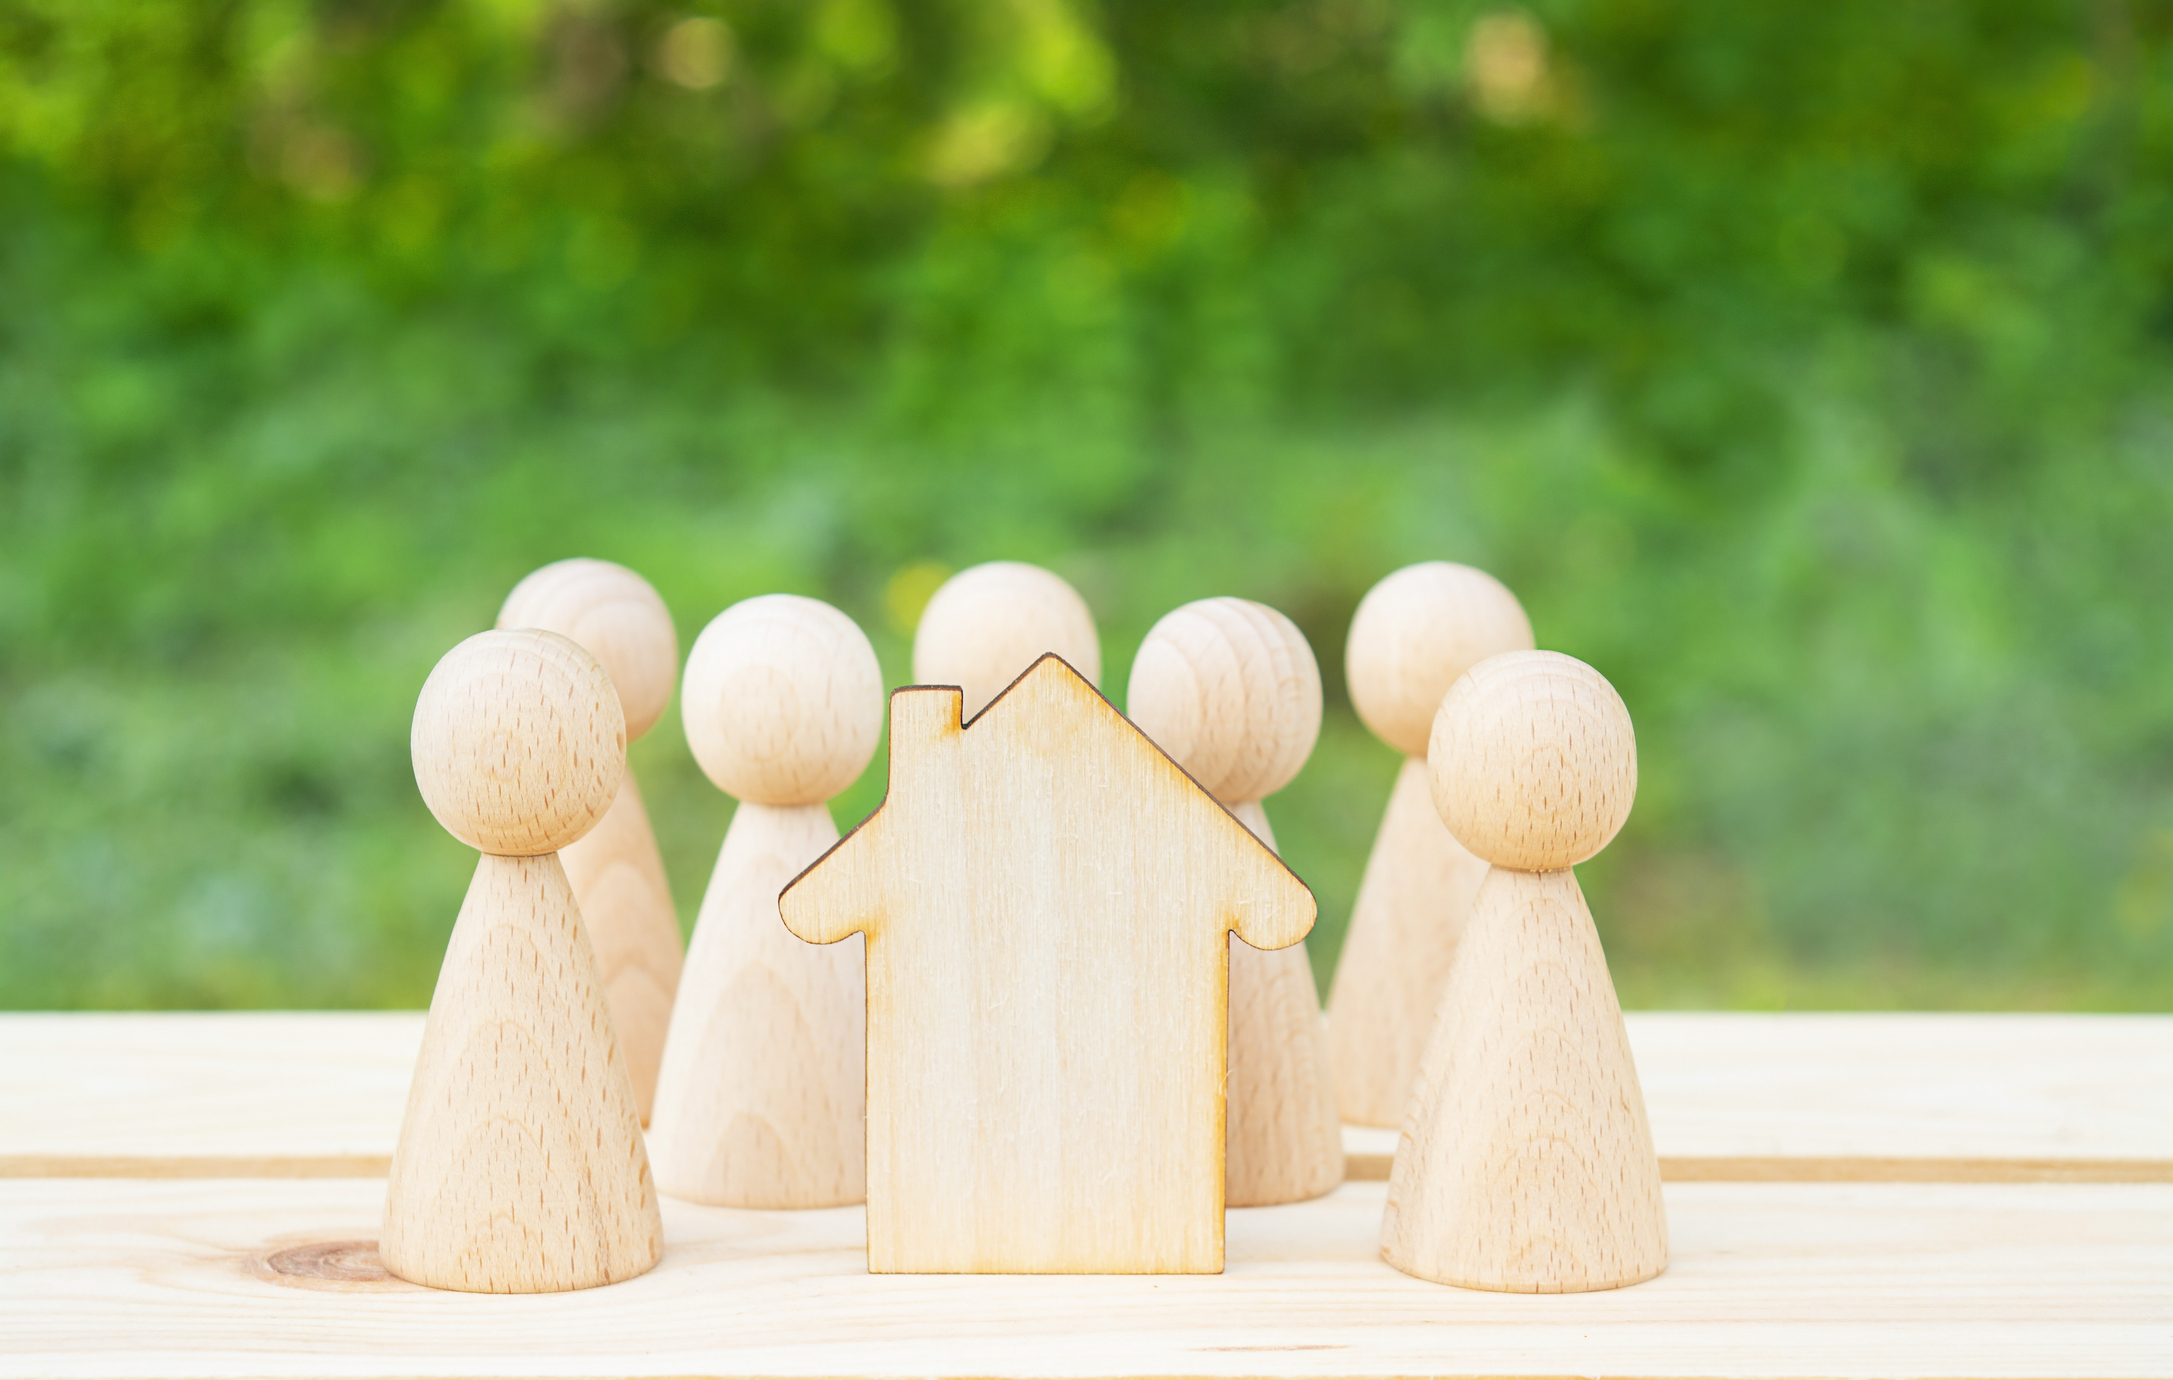 Family concept. Wooden house and many little men on a wooden table. Property division. Image credit: Yulia Romashko, iStock